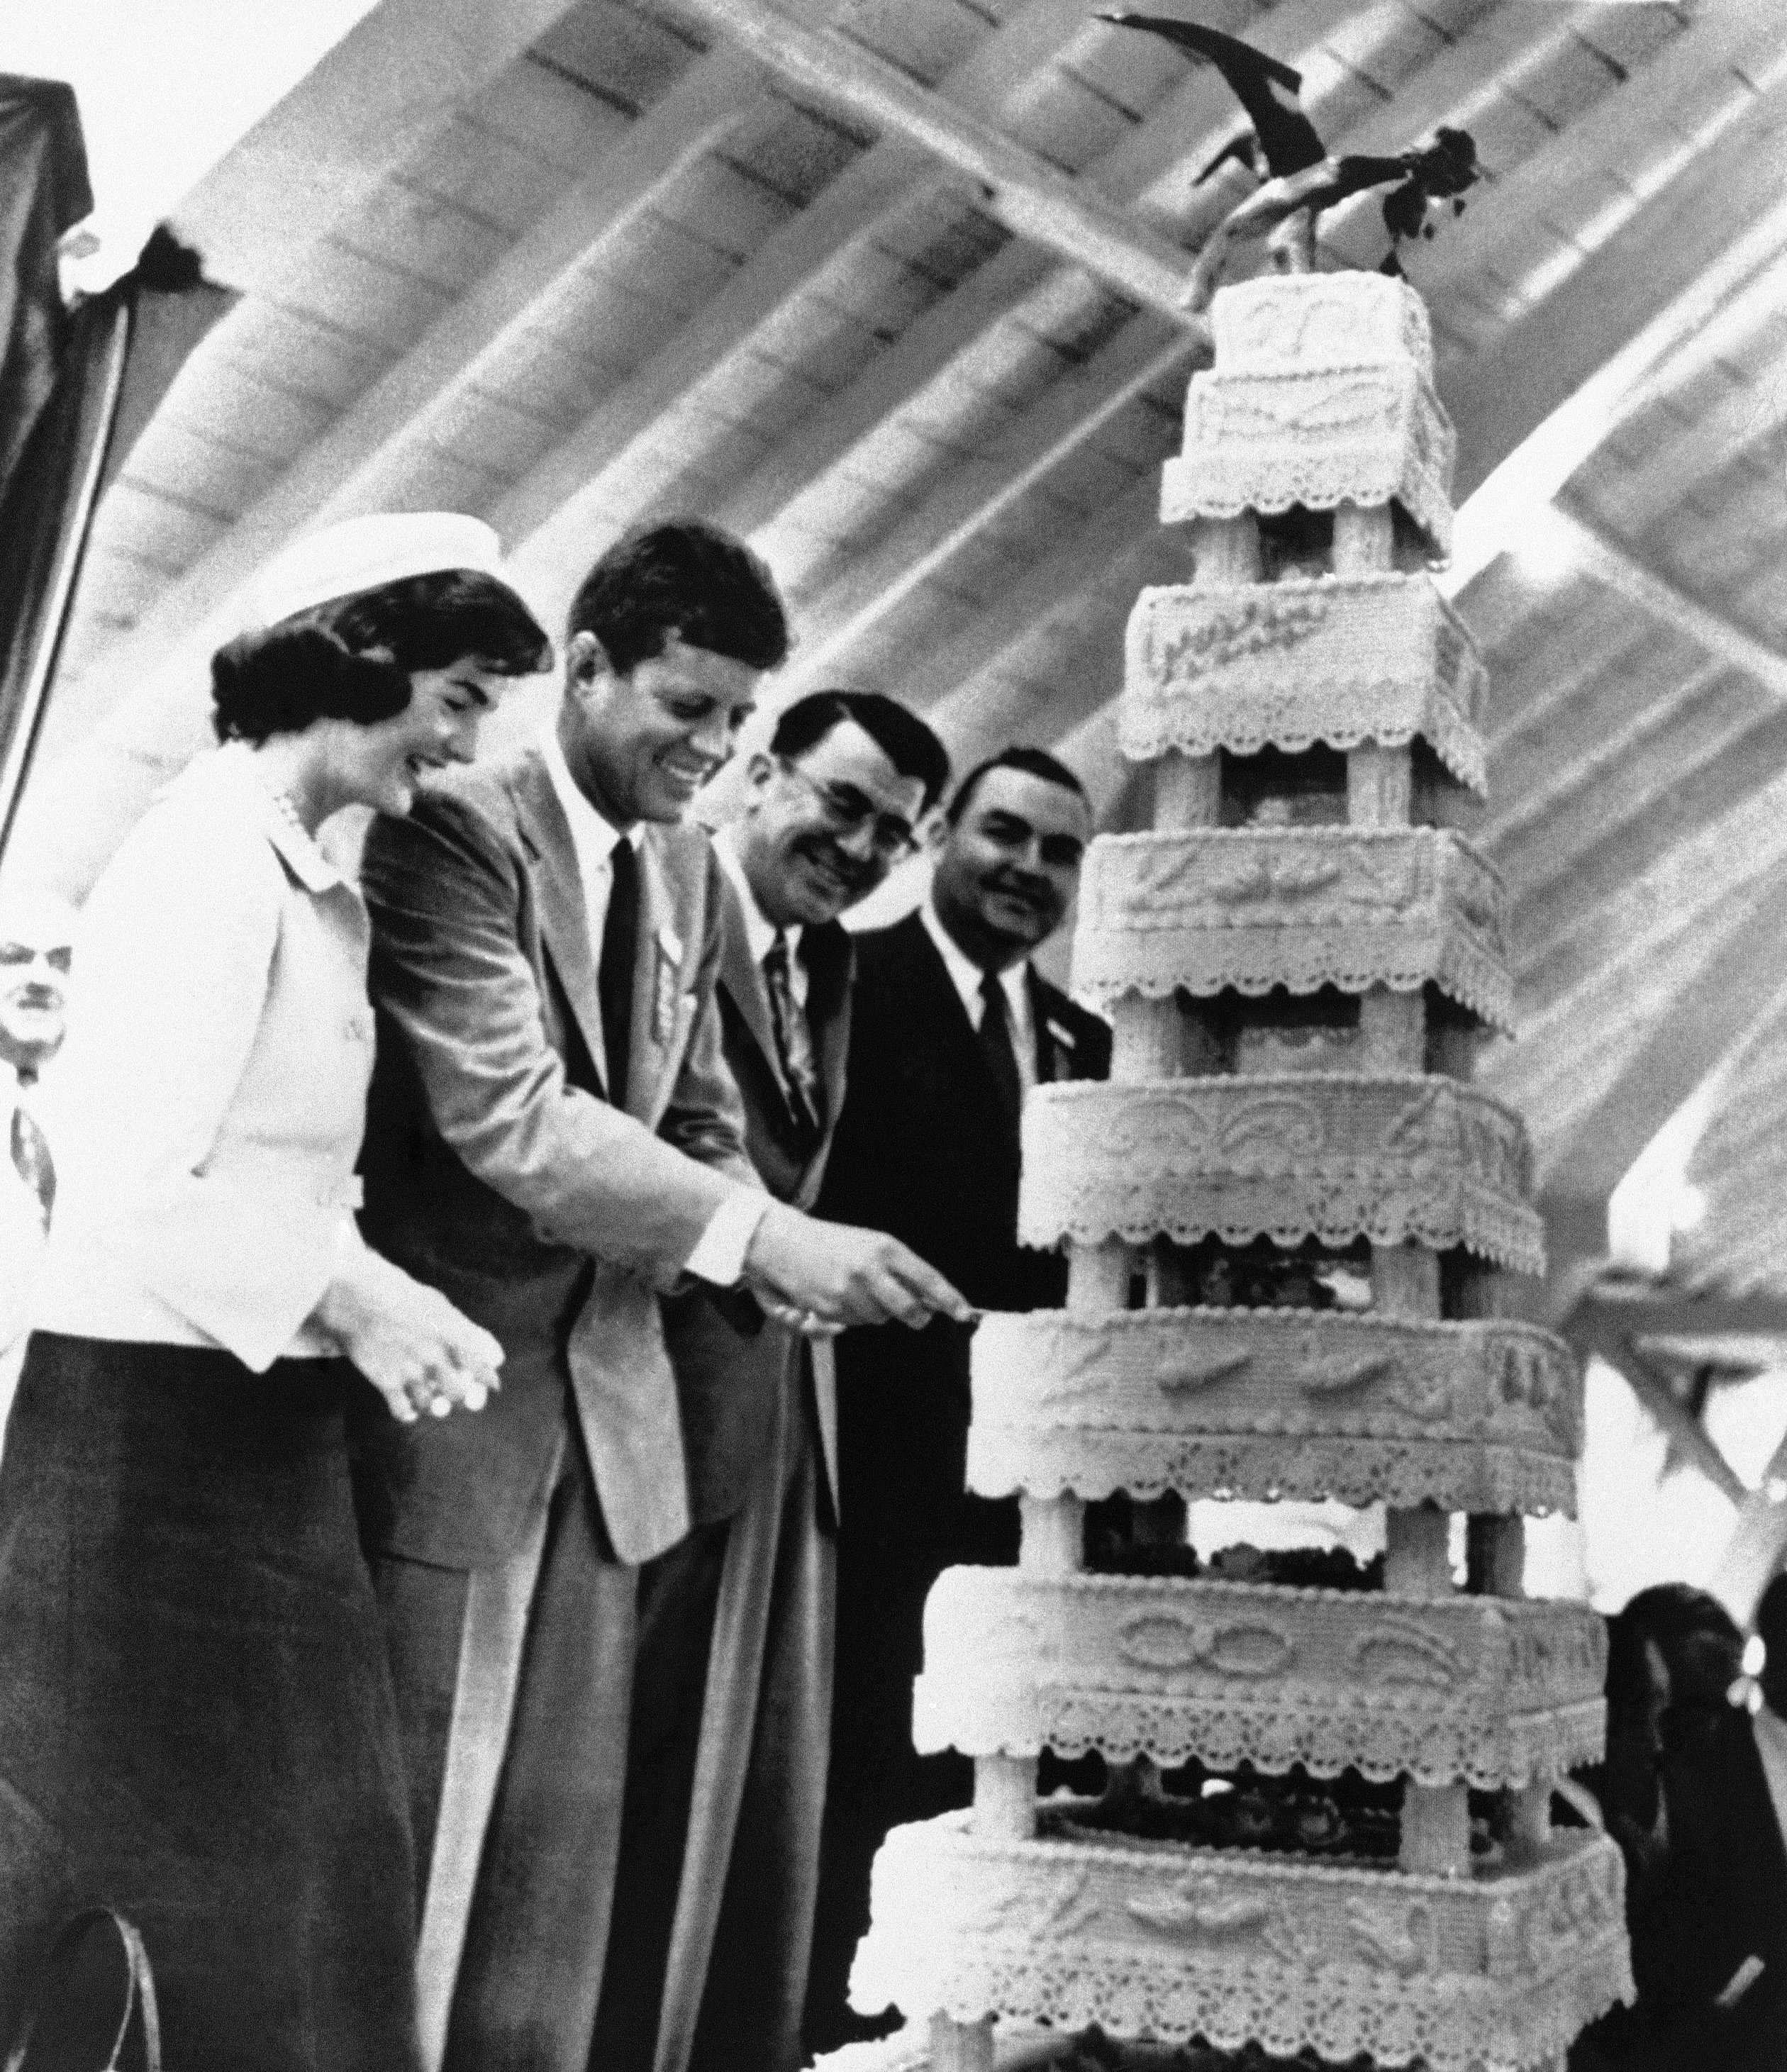 <div class='meta'><div class='origin-logo' data-origin='none'></div><span class='caption-text' data-credit='ASSOCIATED PRESS'>U.S. Senator John F. Kennedy (D) of Mass. slices to birthday cake in his honor celebrating his the birthday which fell on May 29, 1956 in Lincoln Park, Mass.</span></div>